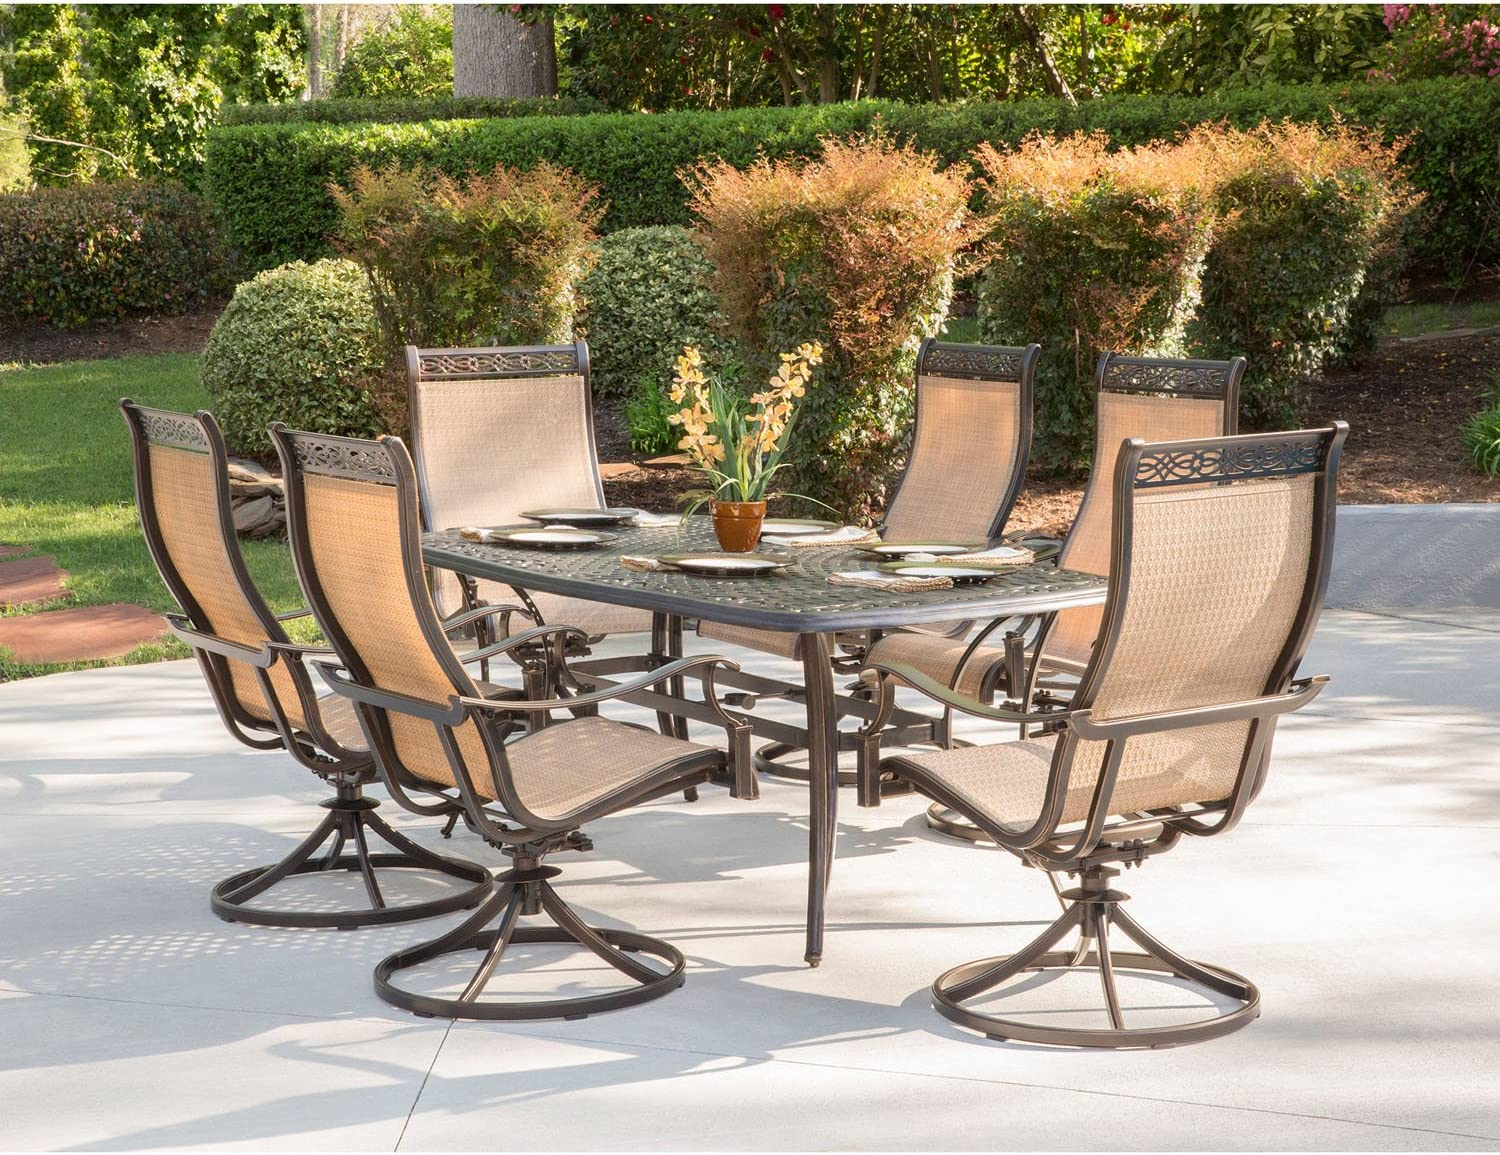 Hanover MANDN7PCSW-6 Chairs and New mail order Rectangle Table Cast B Aluminum Max 56% OFF